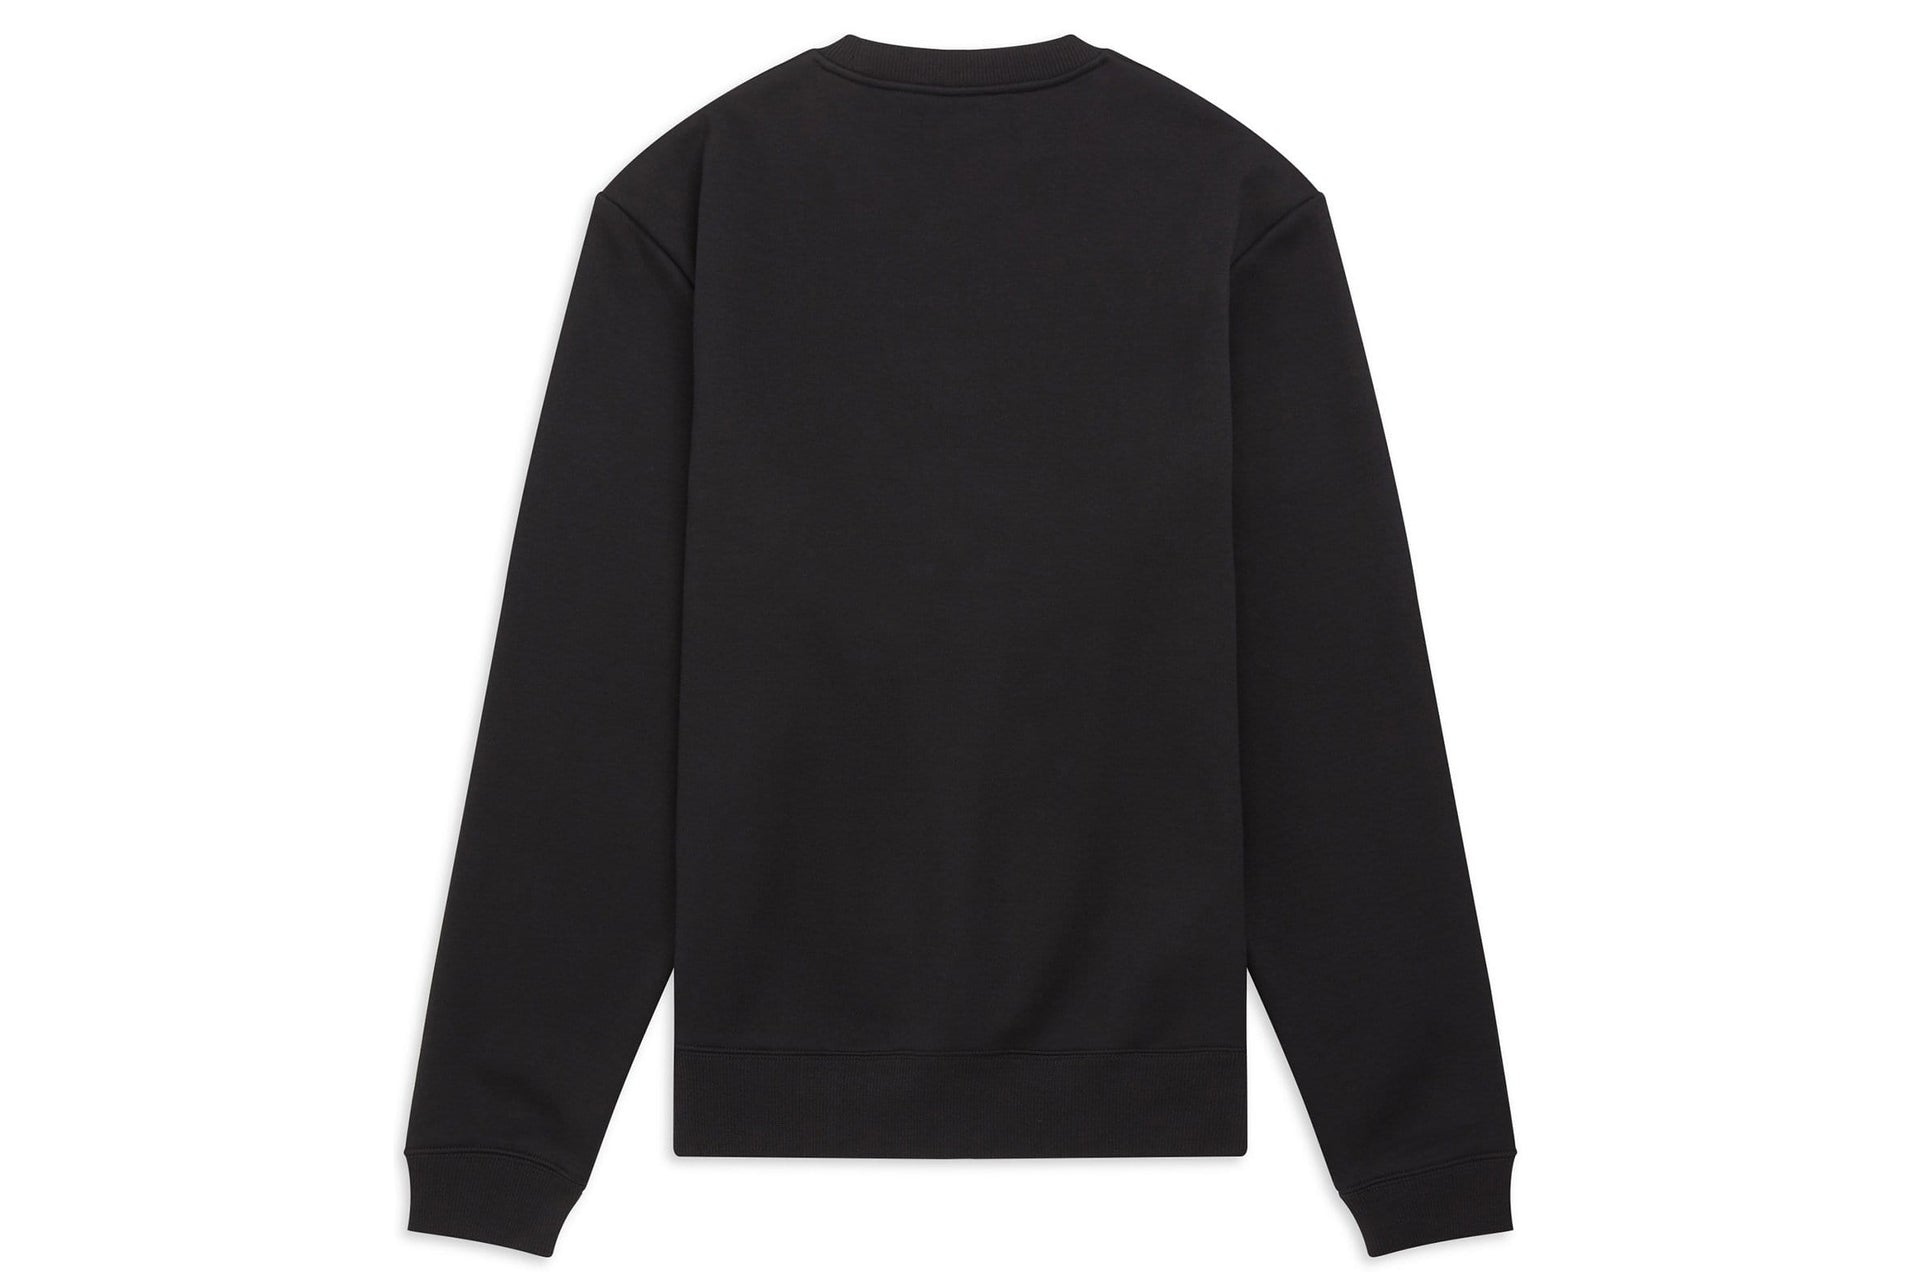 GRAPHIC SWEATSHIRT - M7521 MENS SOFTGOODS FRED PERRY